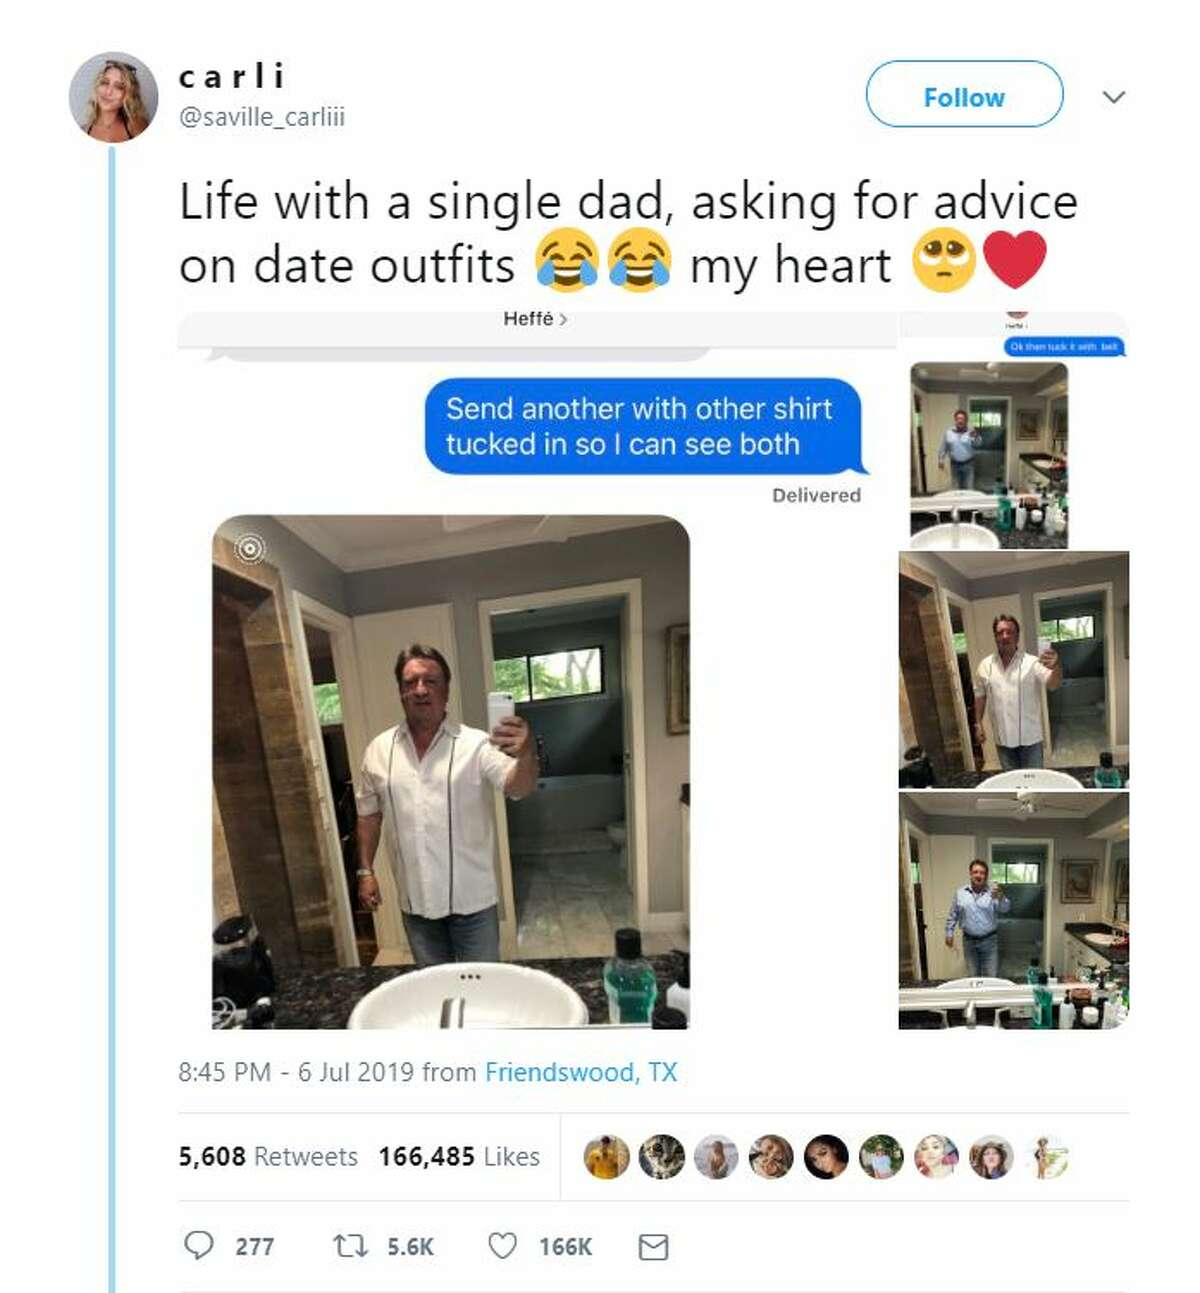 The day Carli Saville of Friendswood made a viral post about her dad asking for dating advice, he got stood up. Now, thousands of people have reached out to the father of four to show love and support.